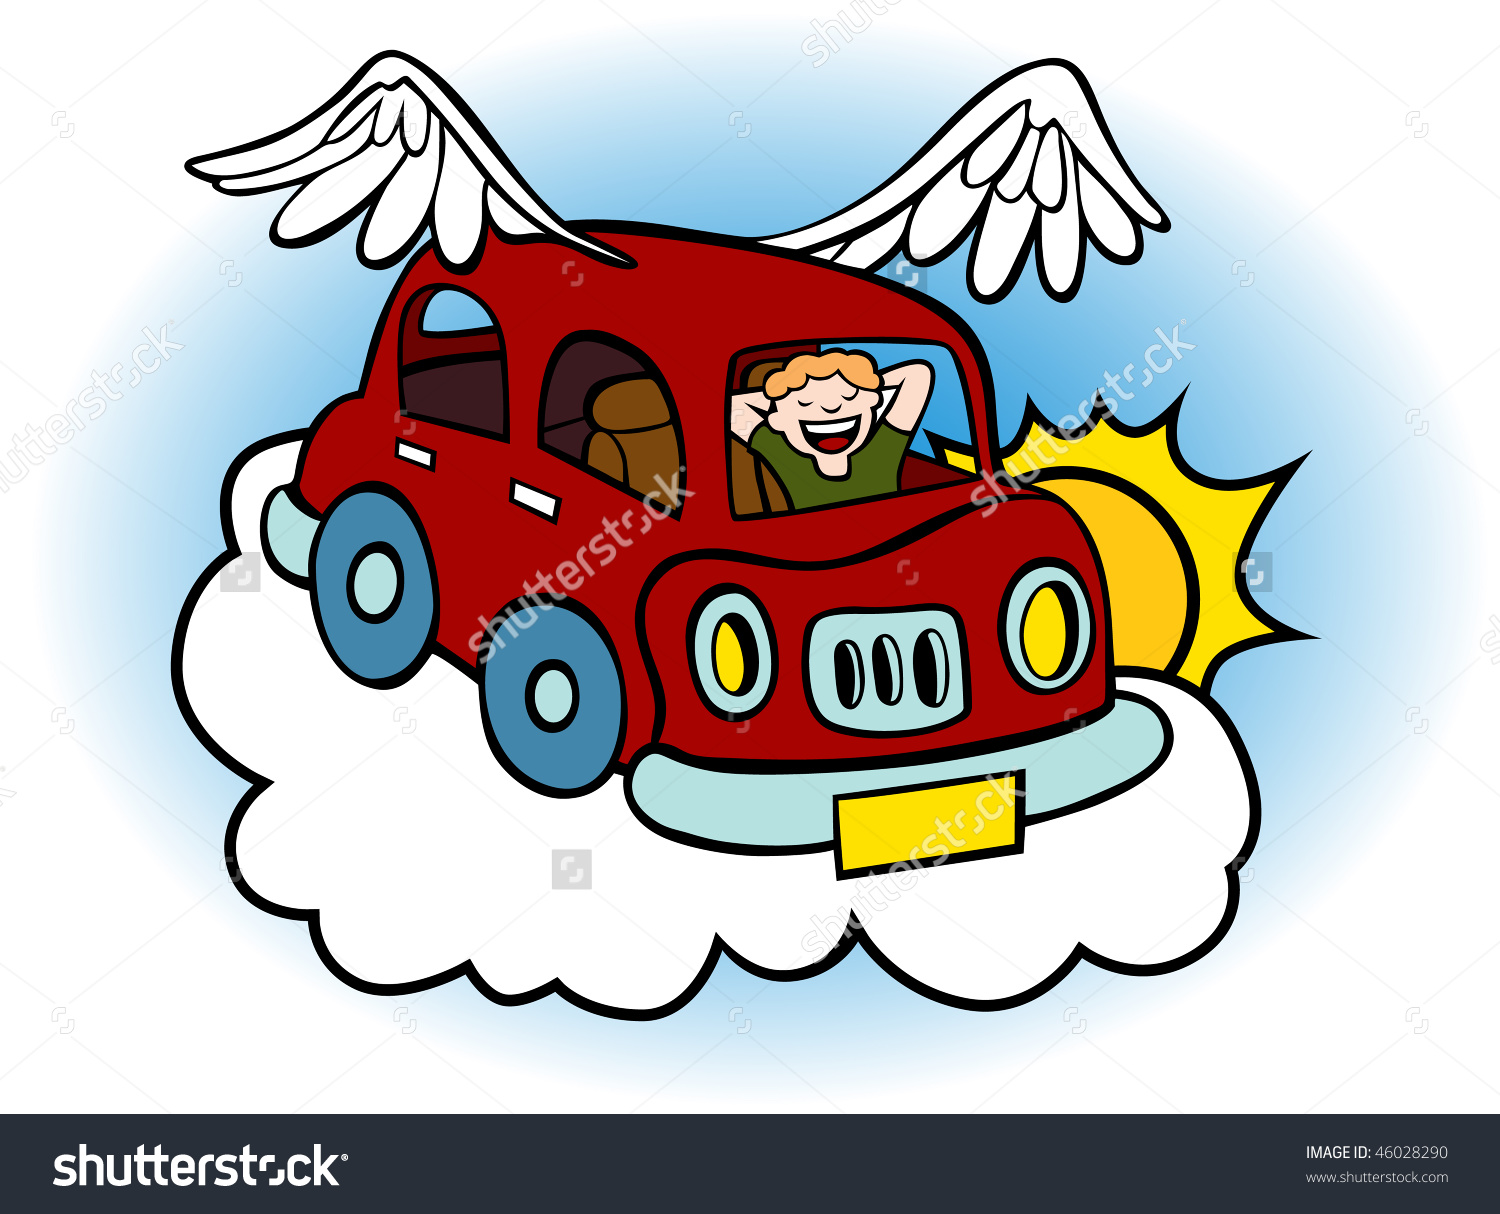 Car with wings clipart.